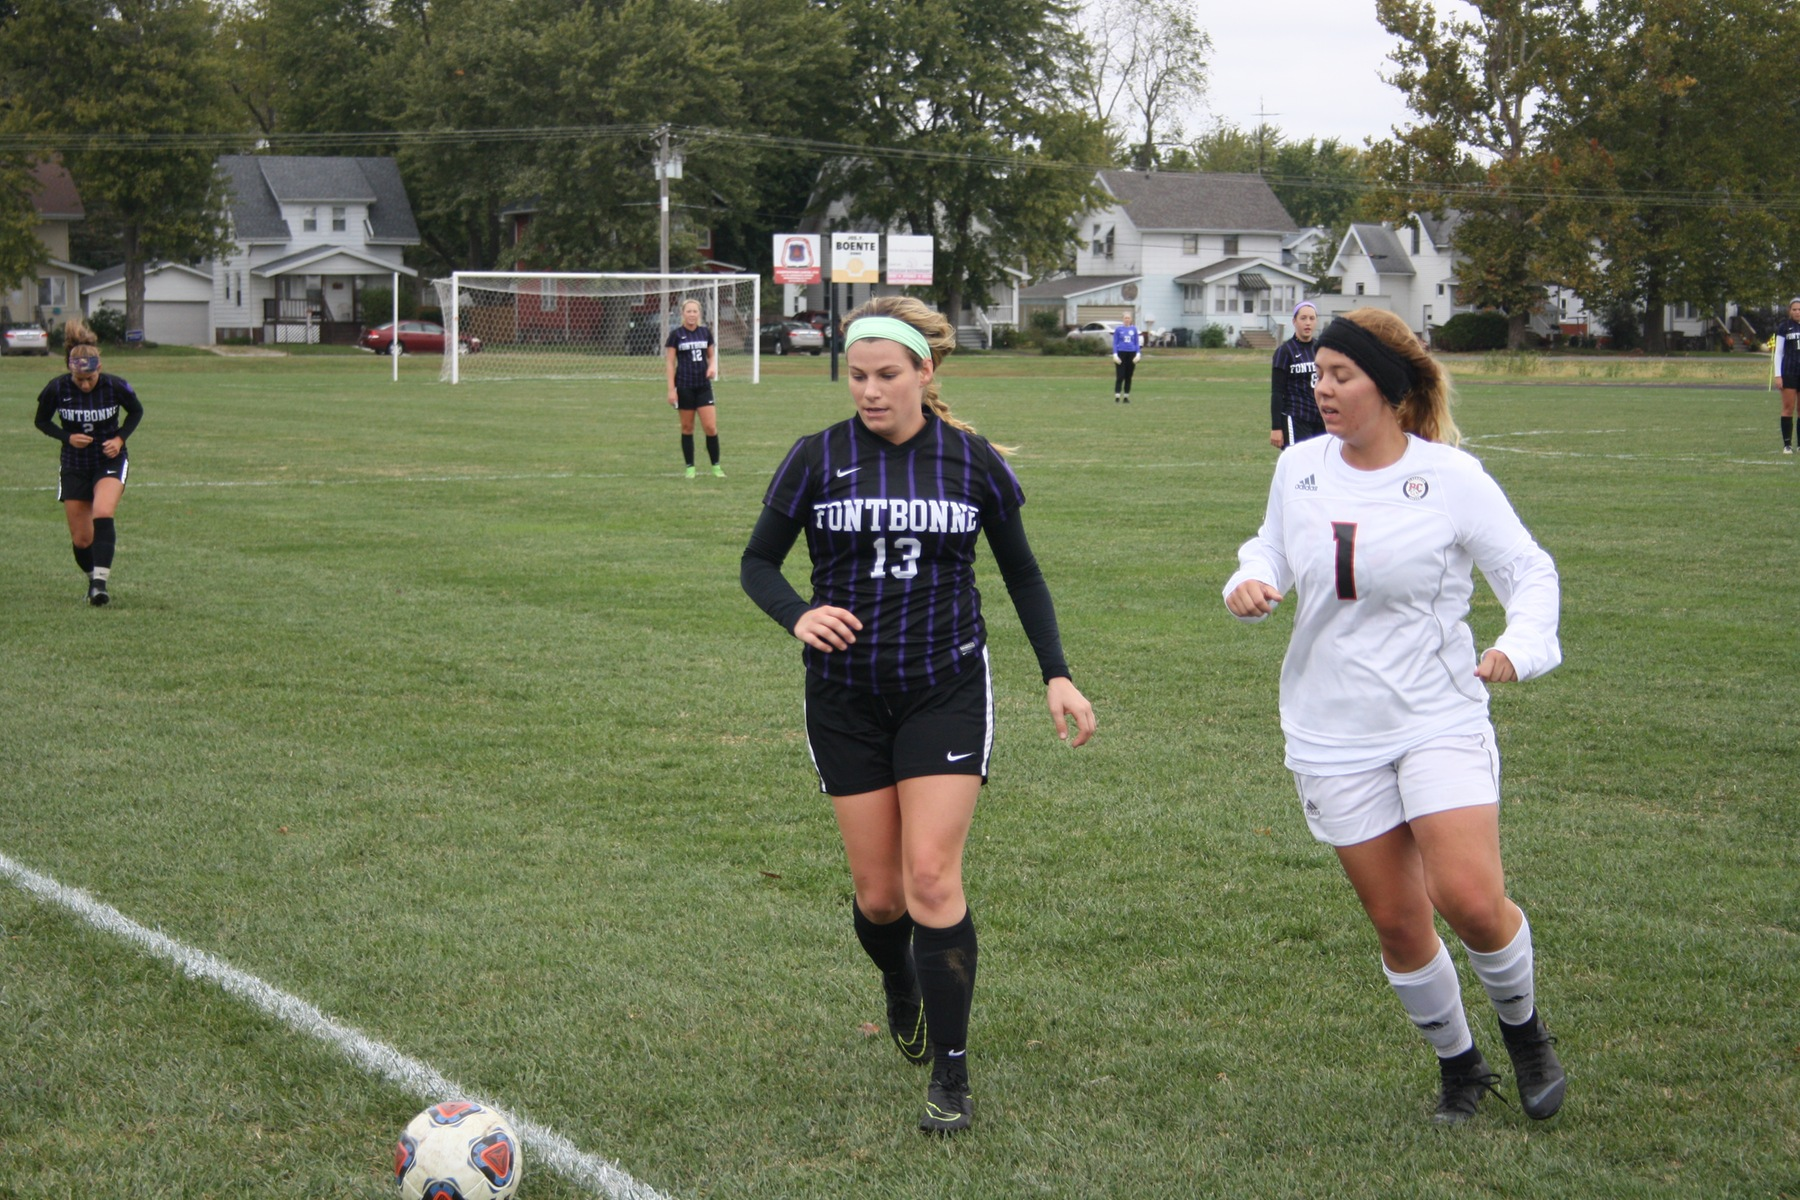 Blackburn Beavers defeated by Fontbonne